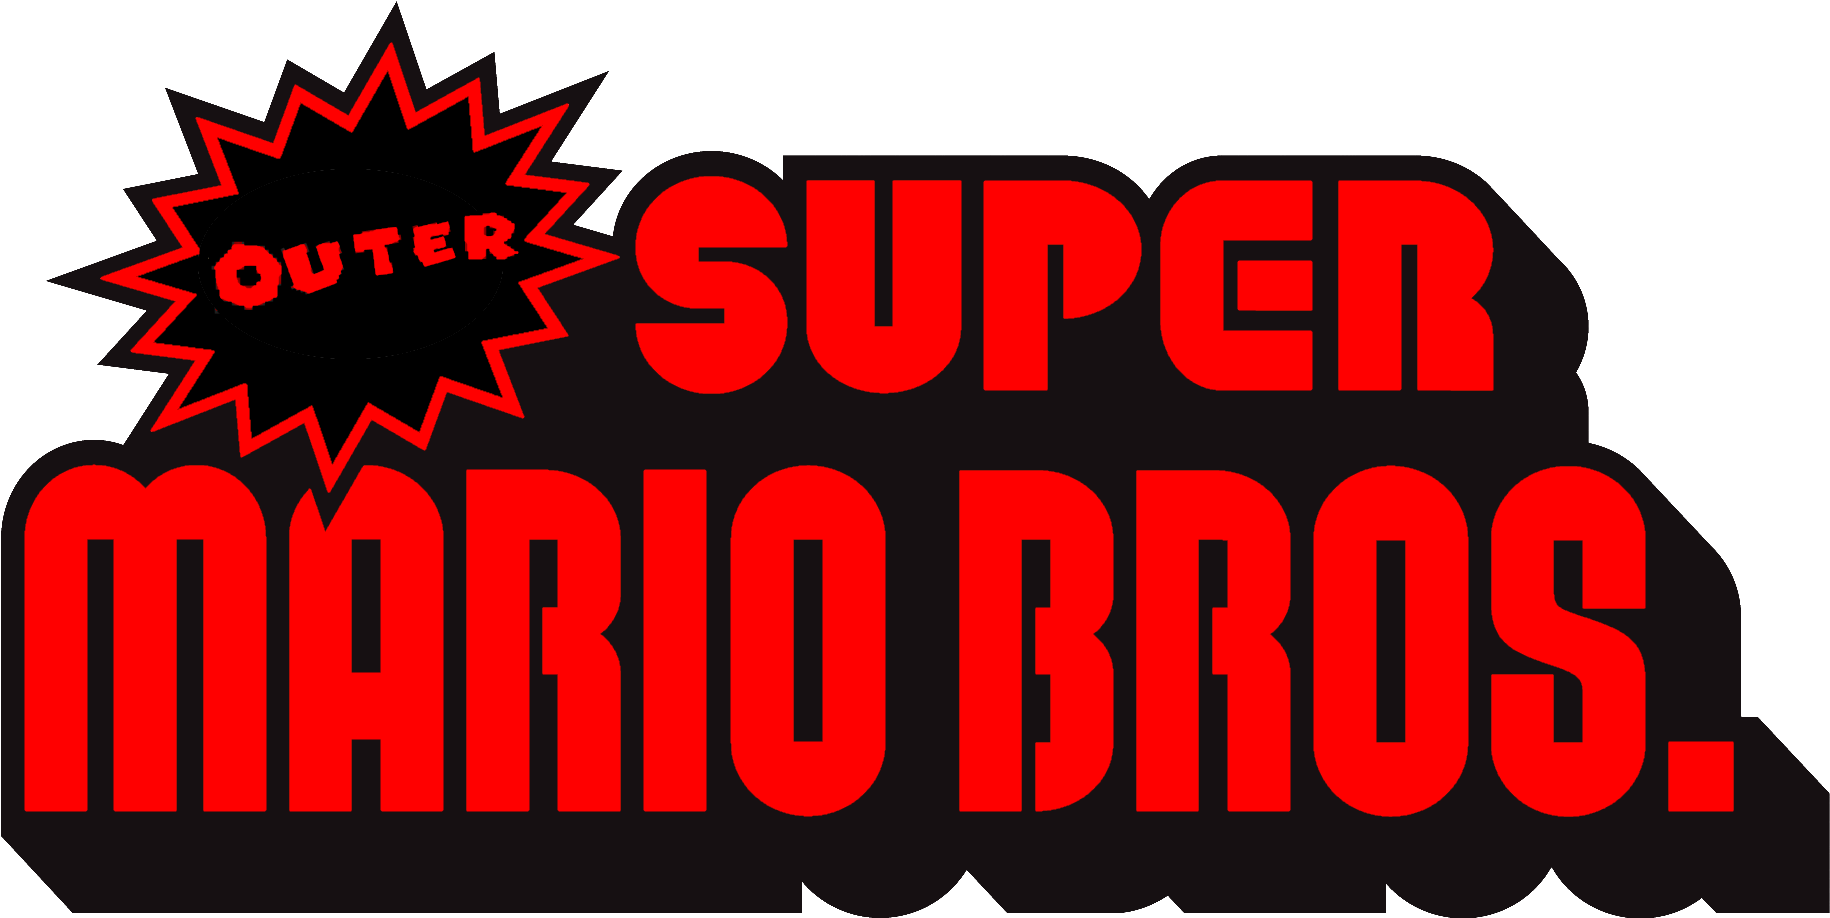 Download New Super Mario Bros Wii Logo Full Size Png Image Pngkit